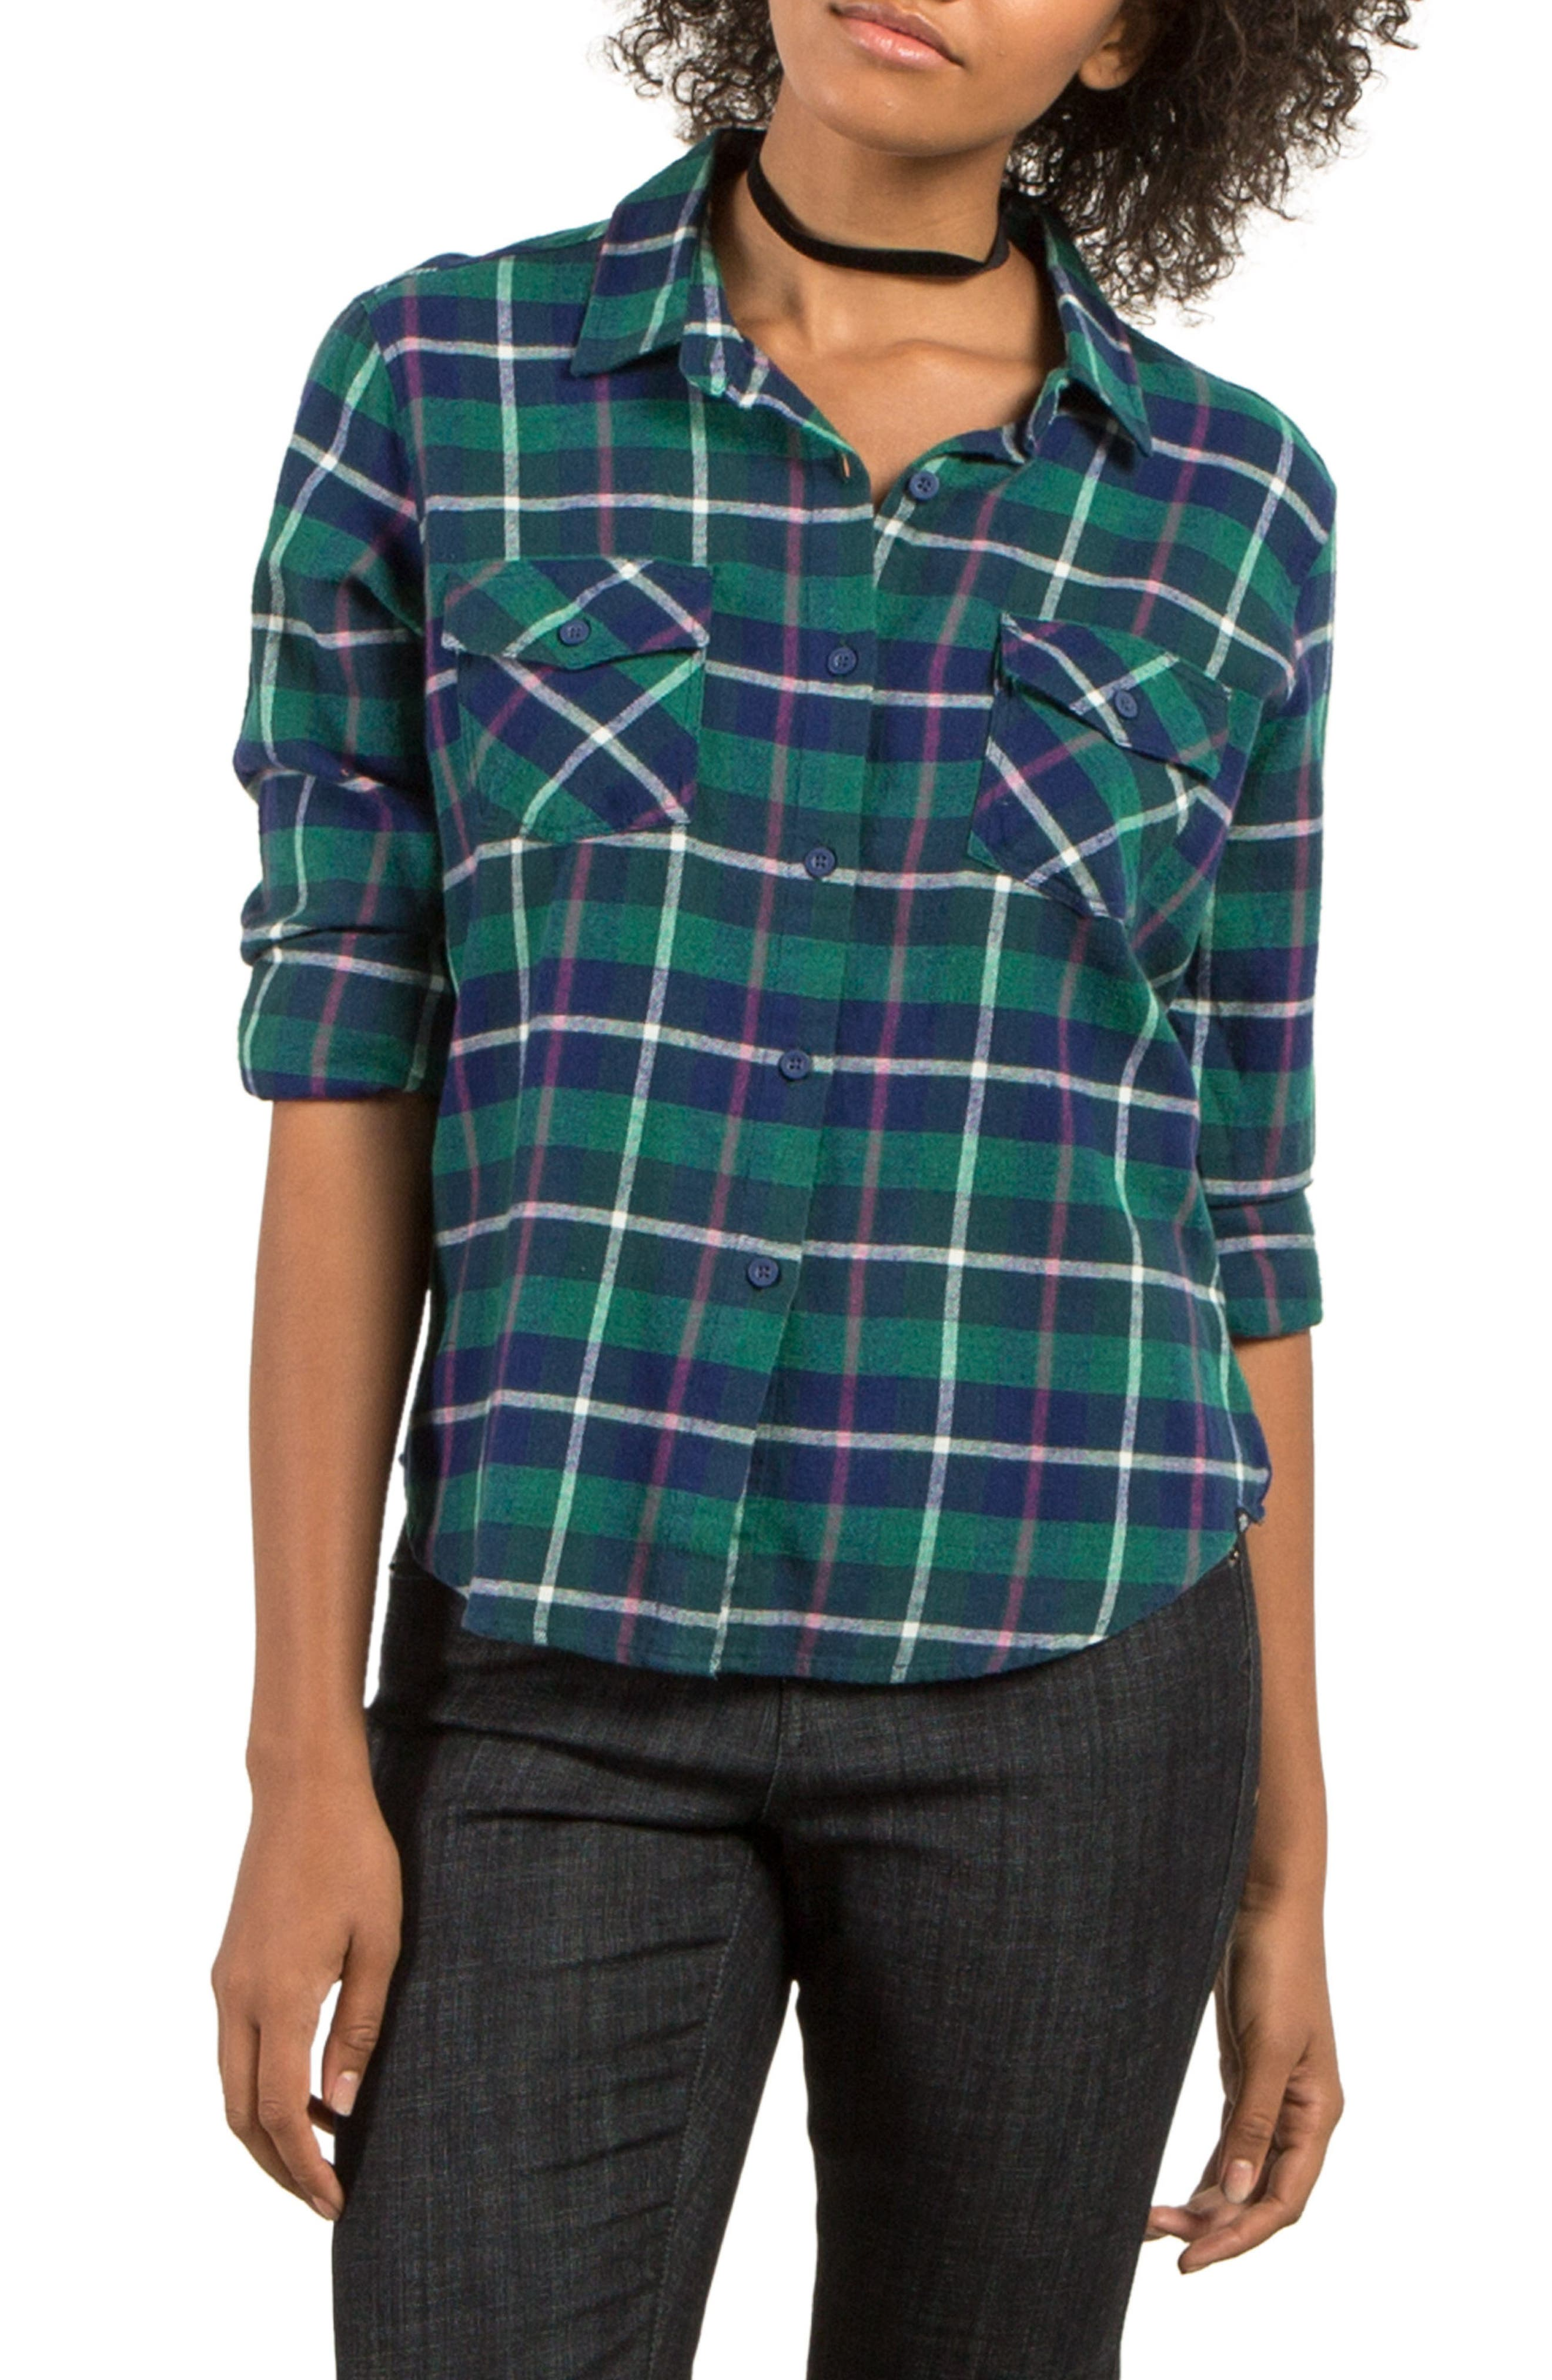 New Flame Plaid Flannel Shirt,                             Main thumbnail 1, color,                             Midnight Green